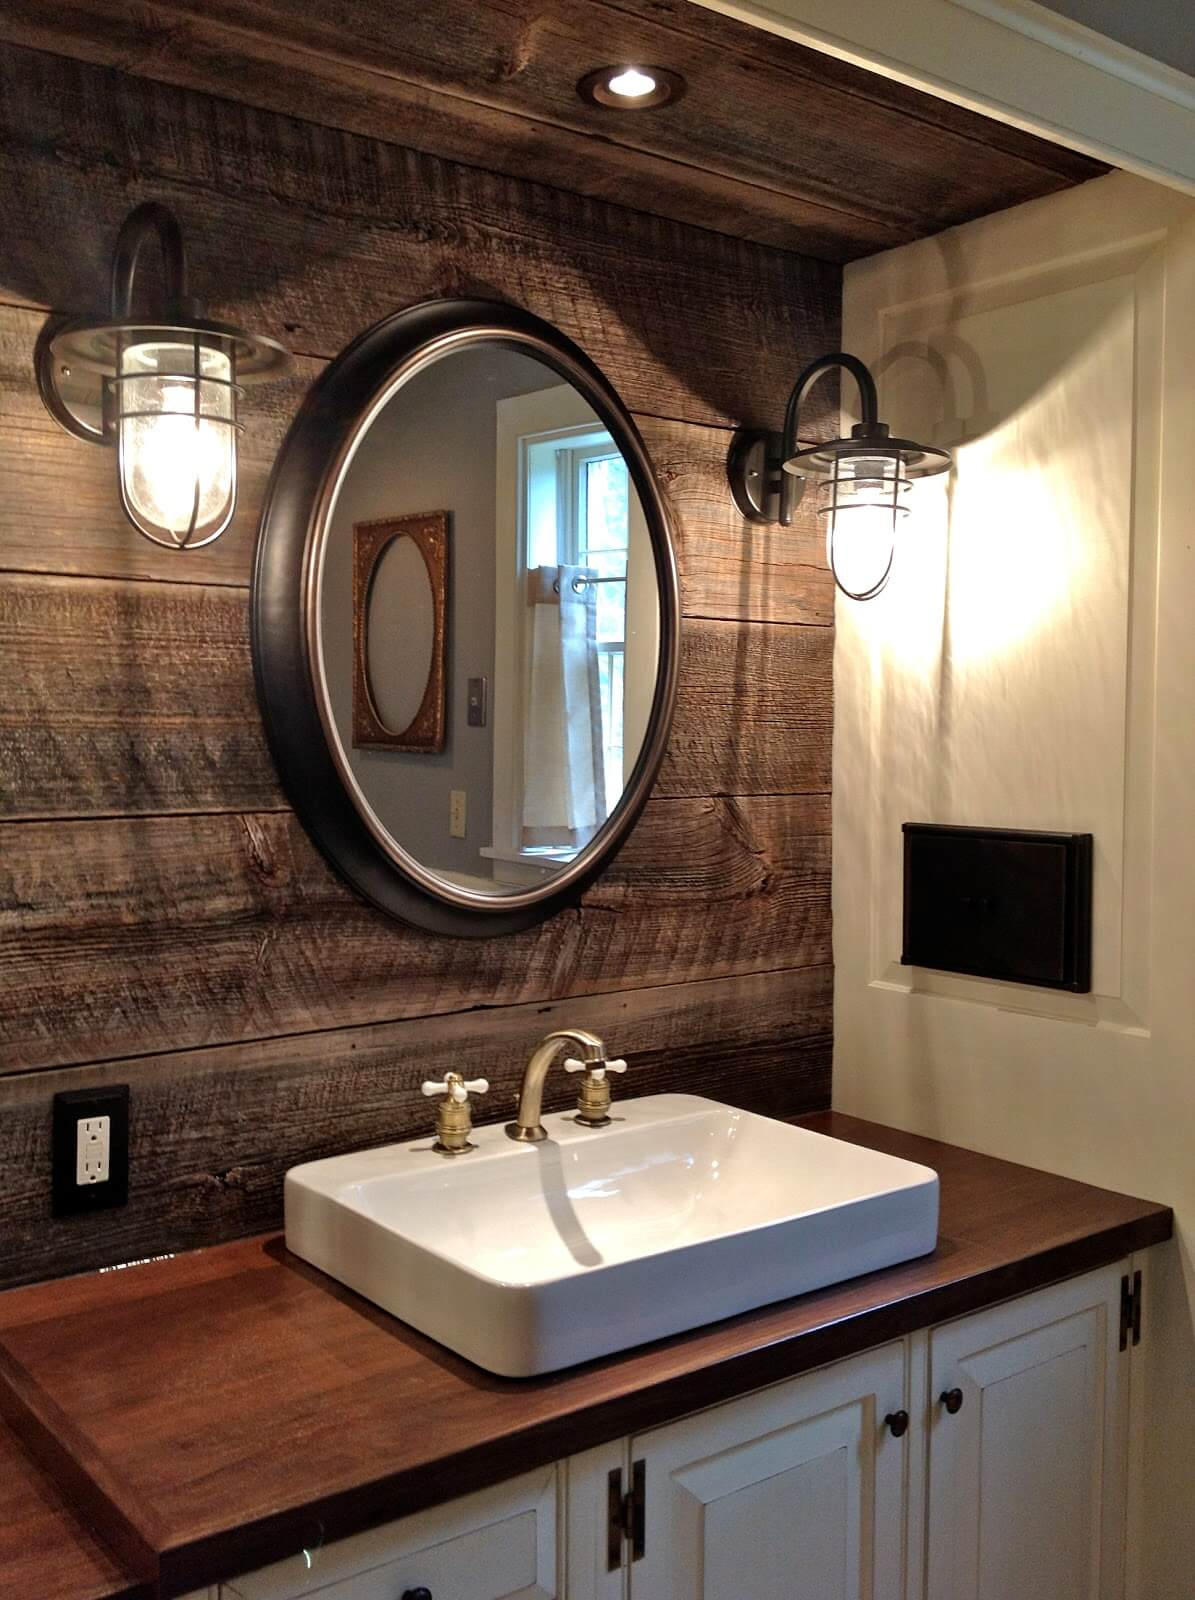 Statement Mirror and Rustic Feature Wall